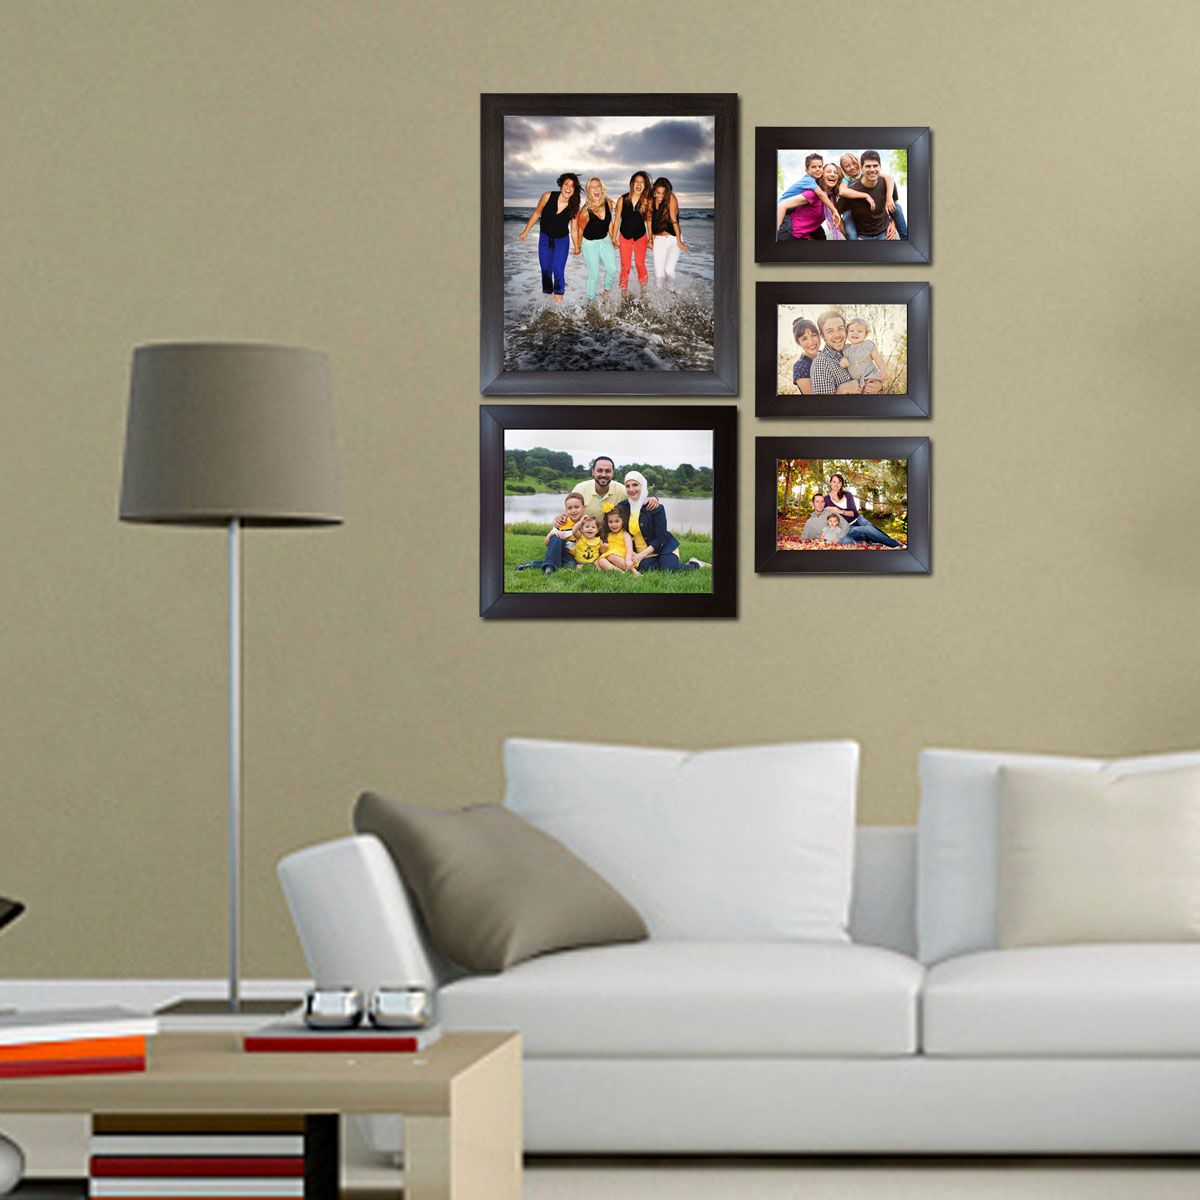 Trends on Wall Acrylic Brown Photo Frame Sets - Pack of 5